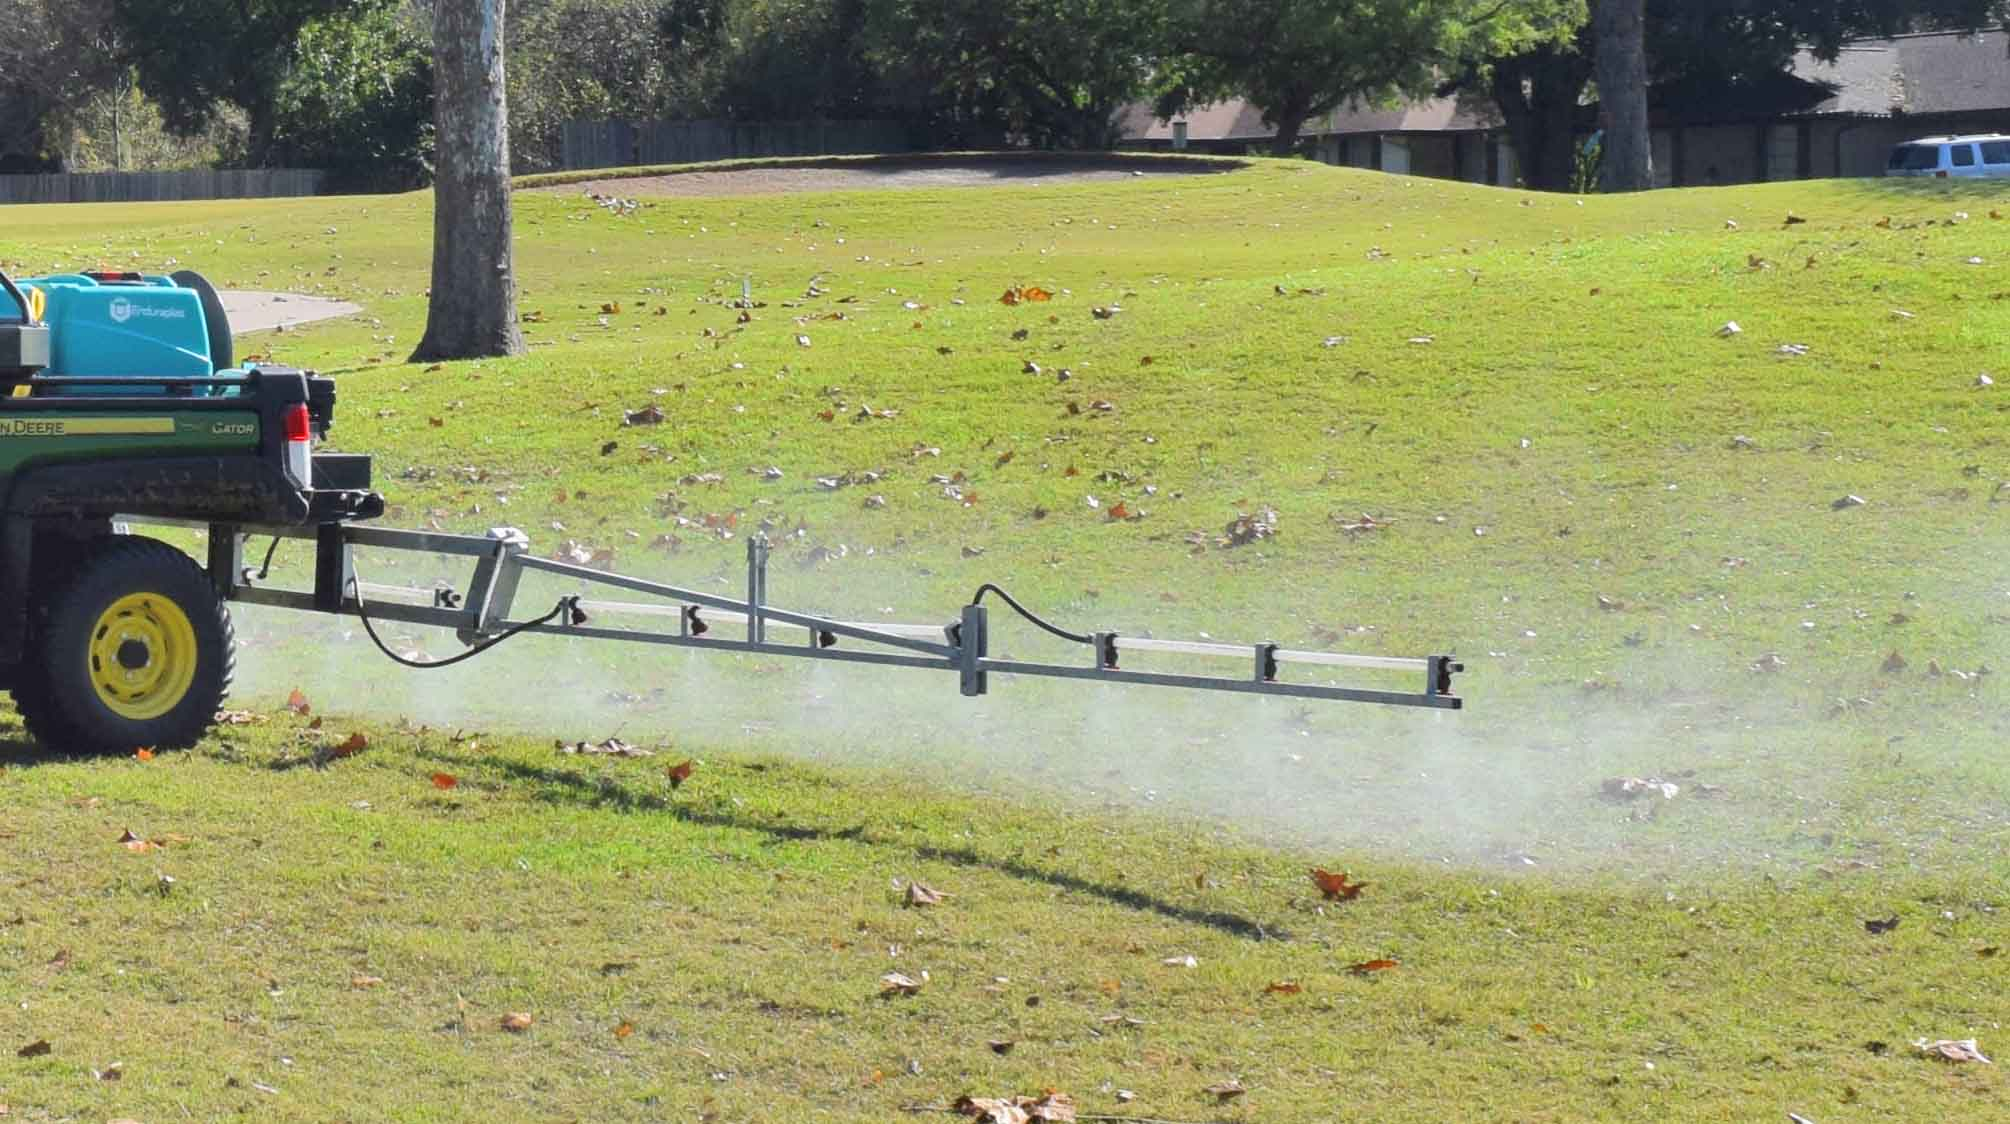 8 Effective Ways to Reduce Spray Drift While Boom Spraying